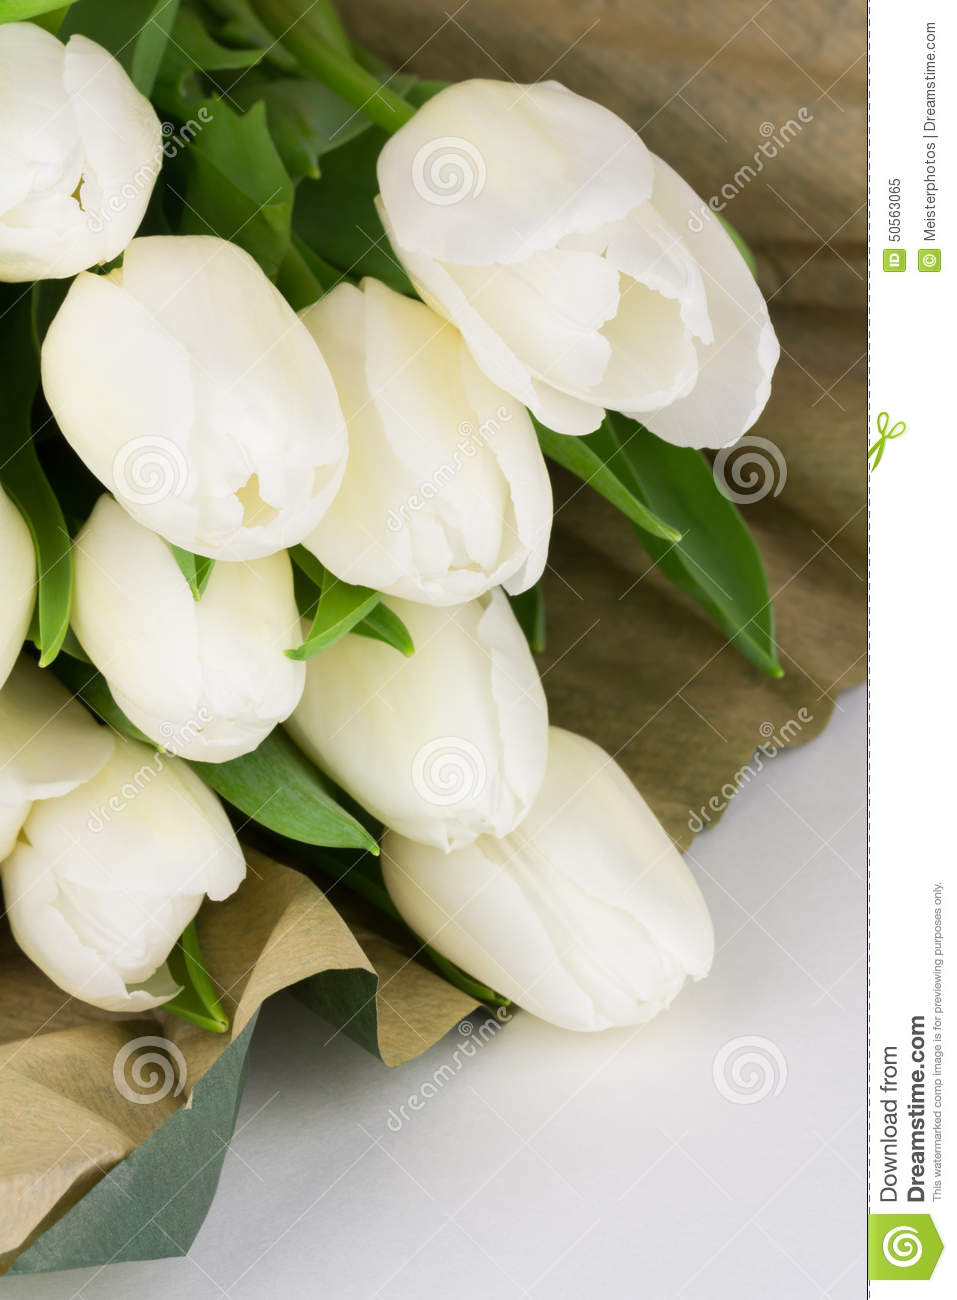 Fresh cut white tulips bunch stock image image of wrapping nature fresh cut white tulip flowers with brown paper wrapping mightylinksfo